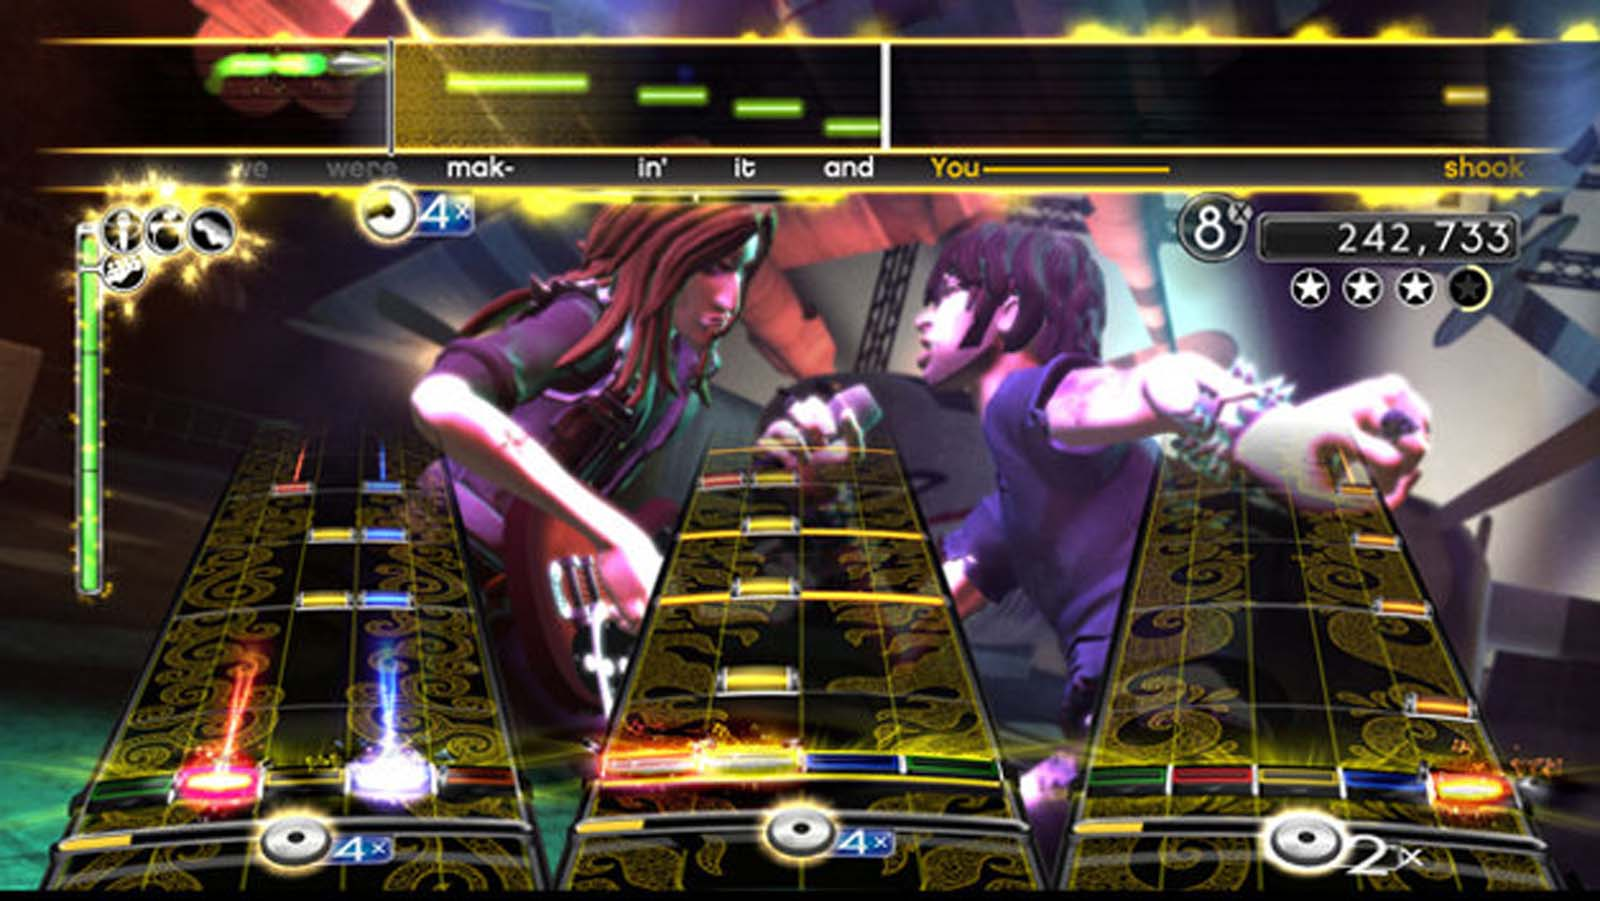 AC-DC Live - Rock Band Track Pack (USA) ISO < PS2 ISOs